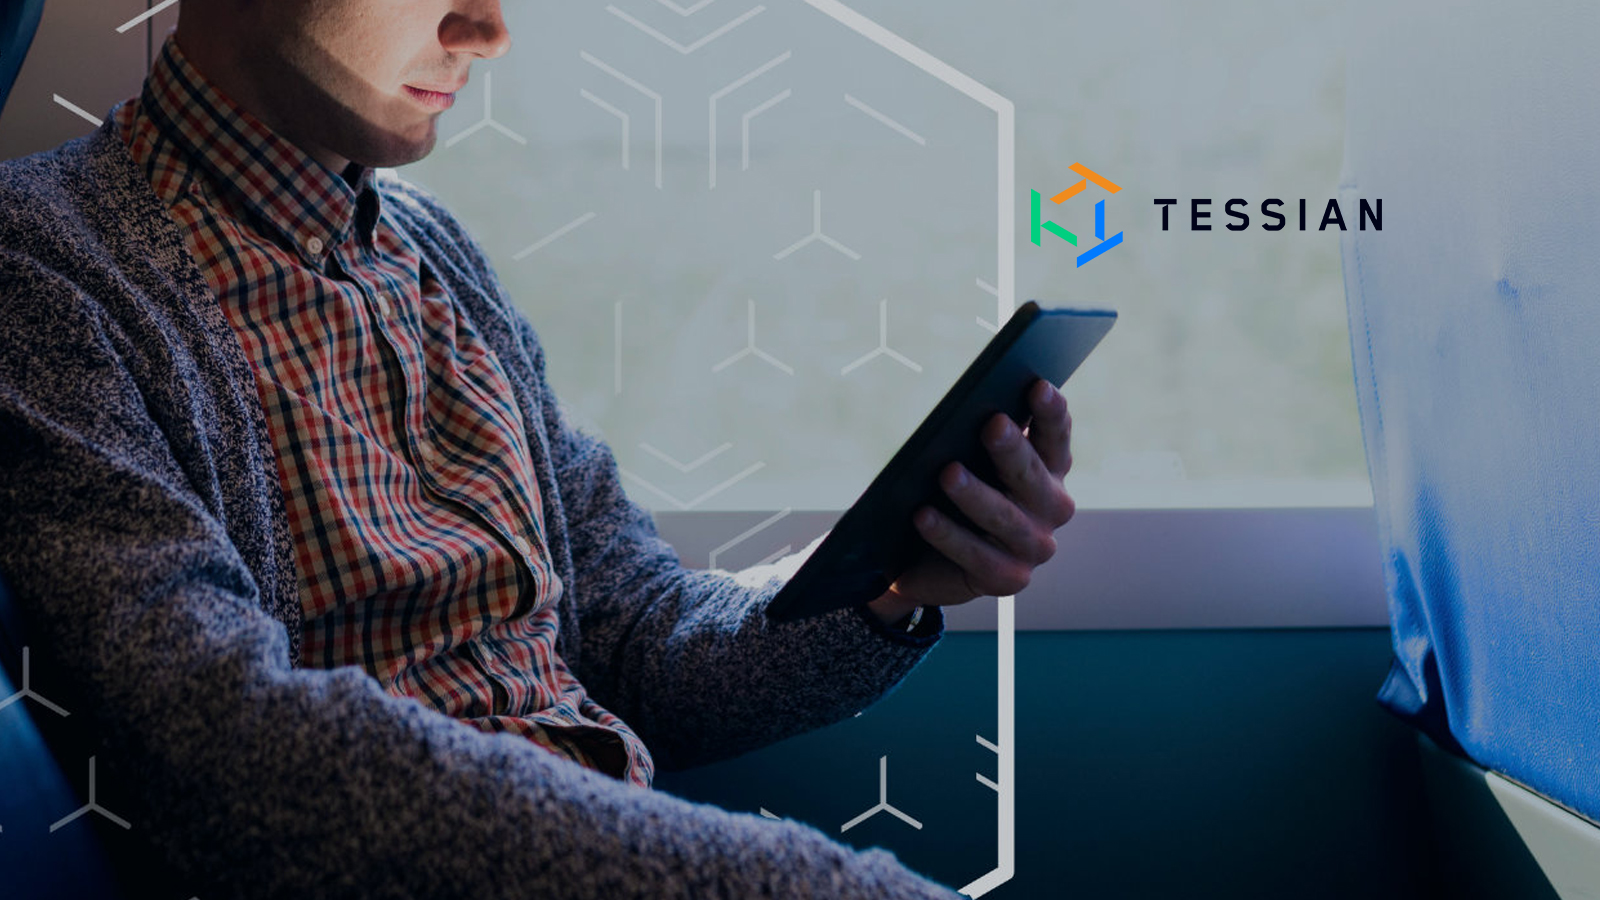 Tessian Launches Industry-First Solution To Detect And Prevent Email Attachment Anomalies